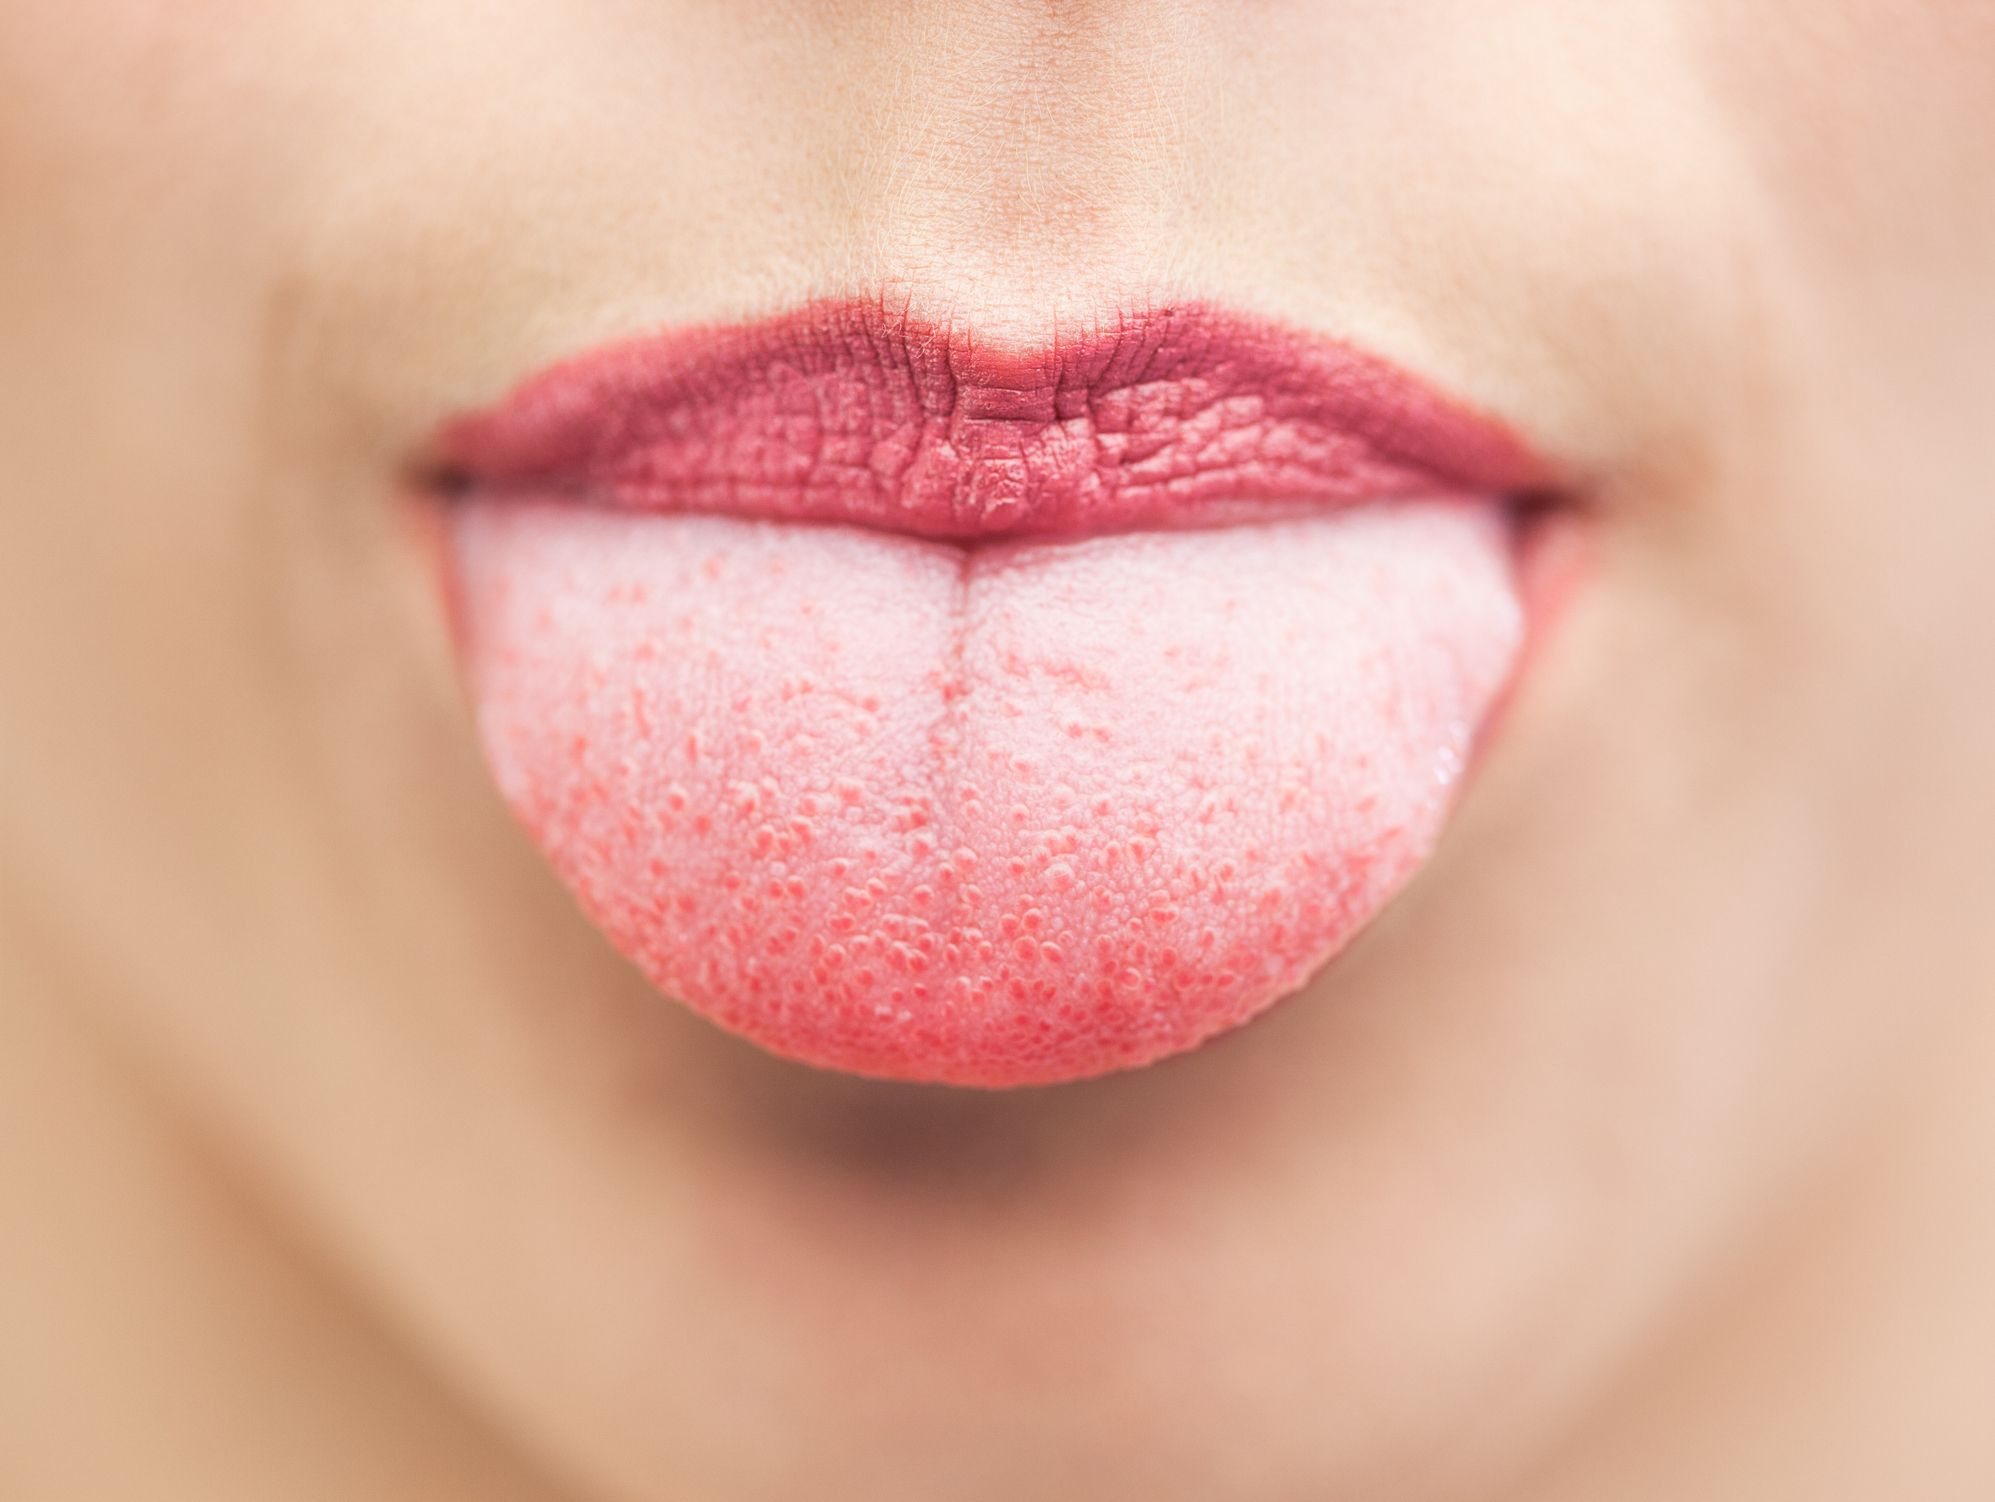 swollen papillae tongue treatment